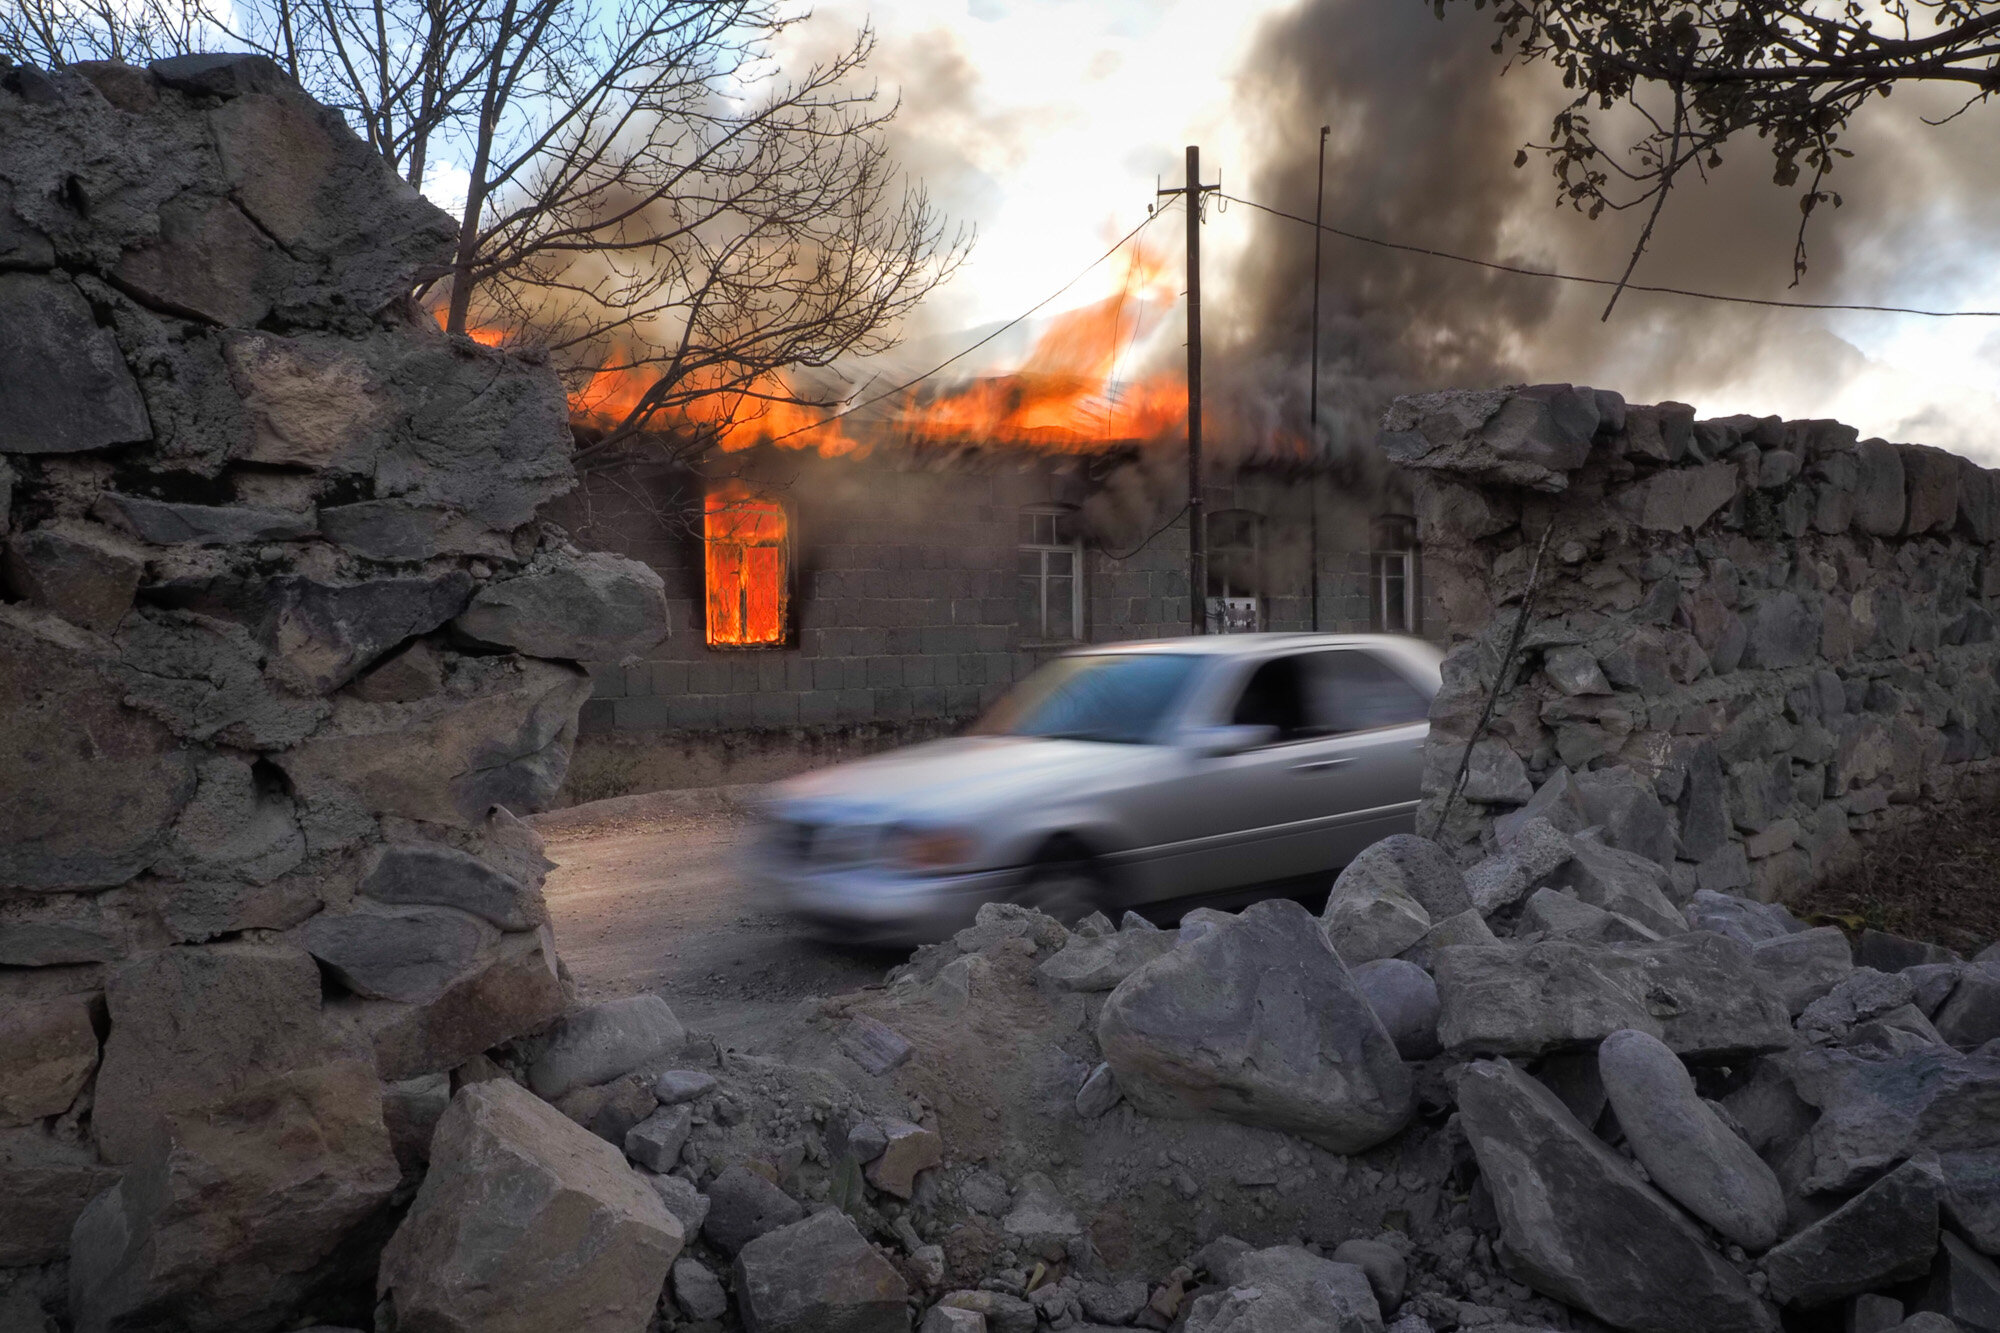 Smoke and flame rise from a burning house in an area once occupied by Armenian forces but soon to be turned over to Azerbaijan, in Karvachar, the separatist region of Nagorno-Karabakh, on Nov. 13, 2020. (AP Photo/Dmitry Lovetsky)